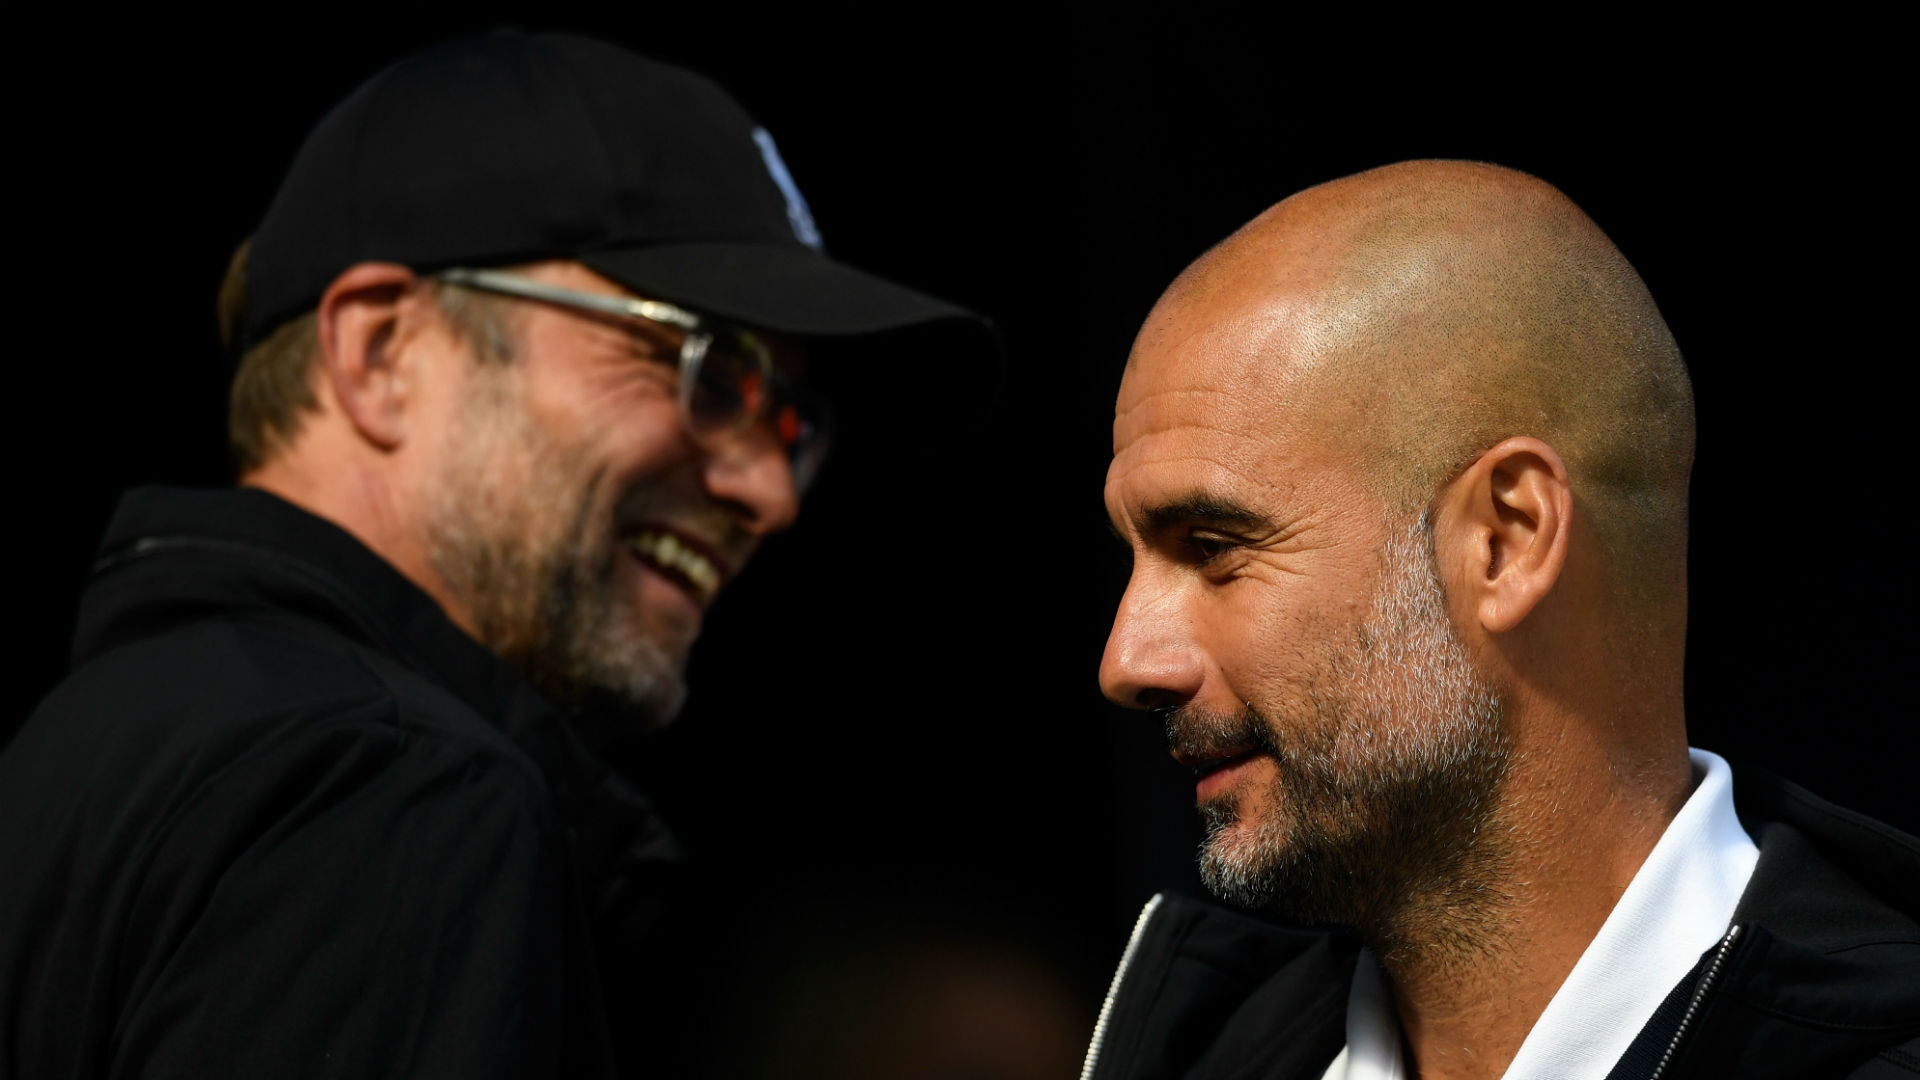 Liverpool vs. Manchester City could attract 1 billion viewers